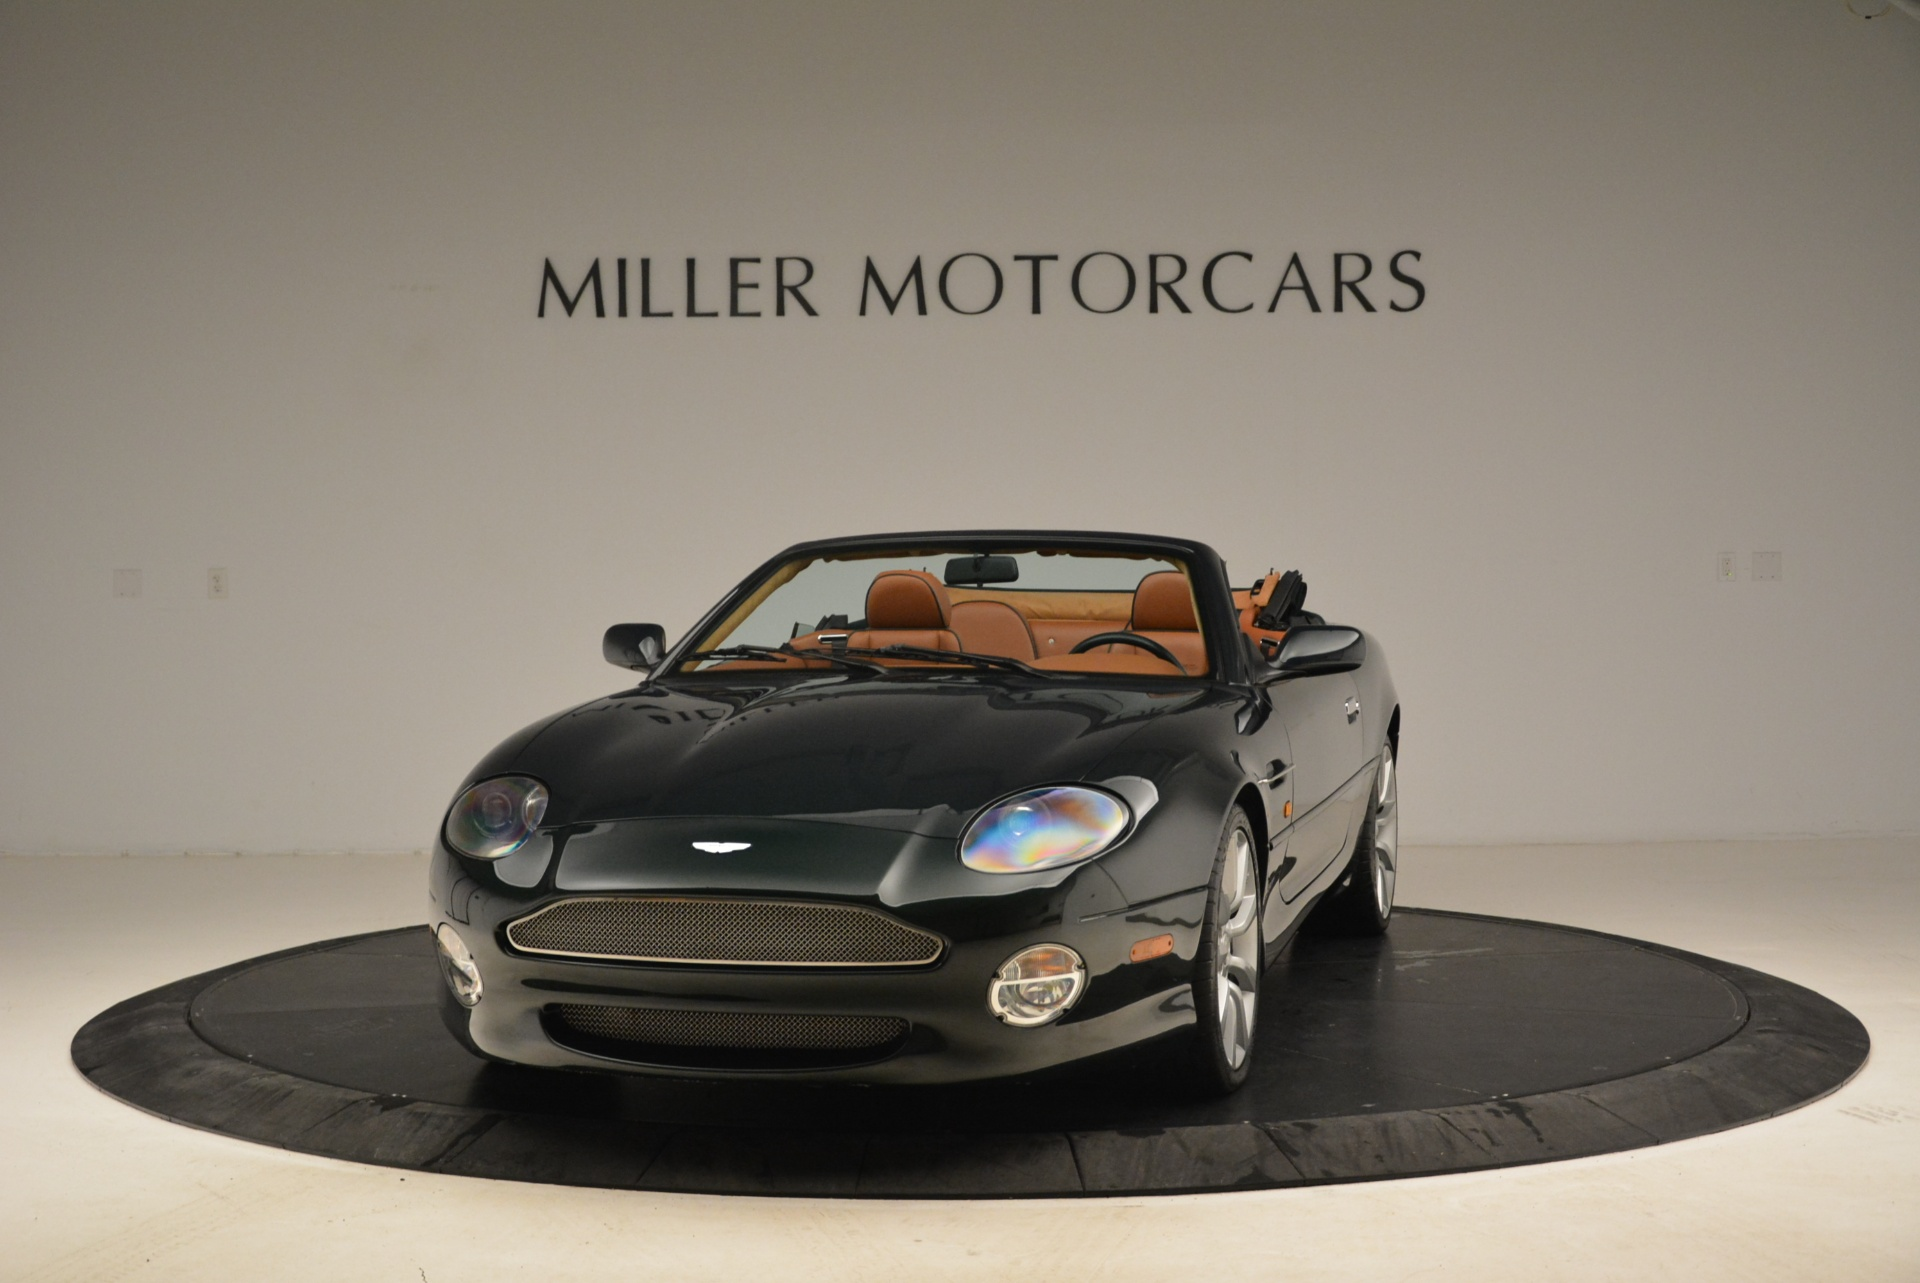 Used 2003 Aston Martin DB7 Vantage Volante For Sale In Westport, CT